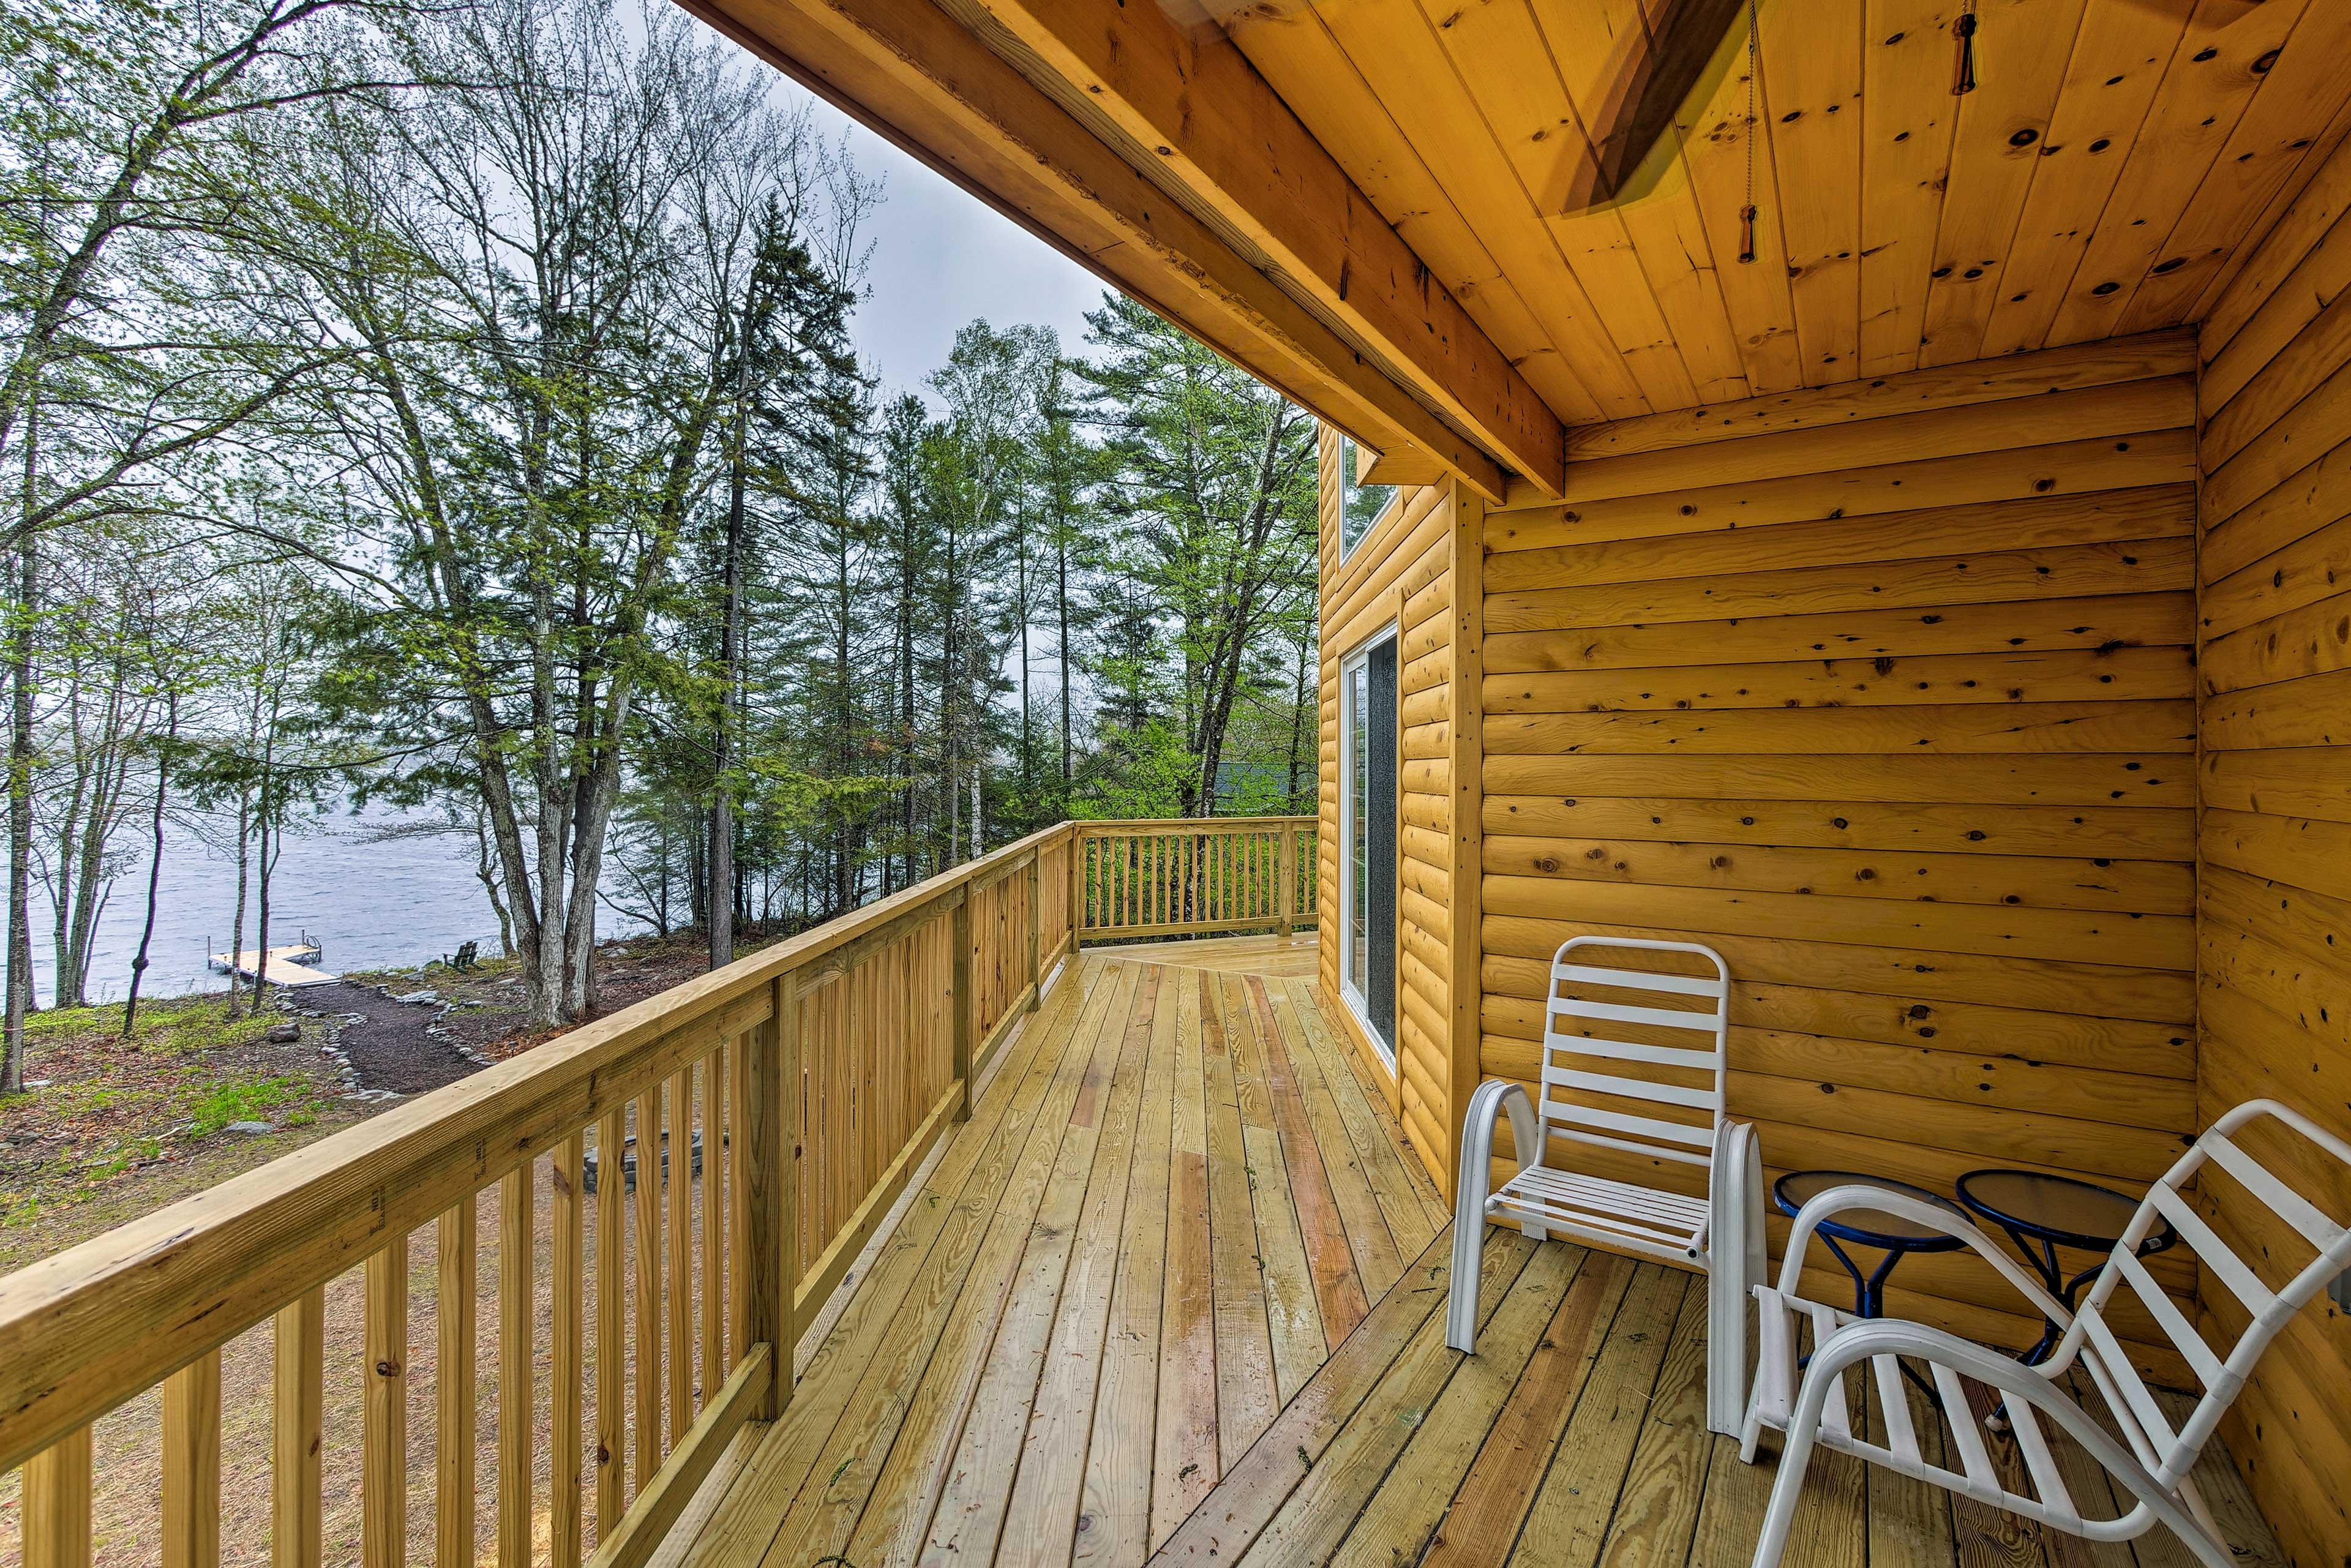 Don't delay in getting to your spot on the deck with views of Davis Pond.